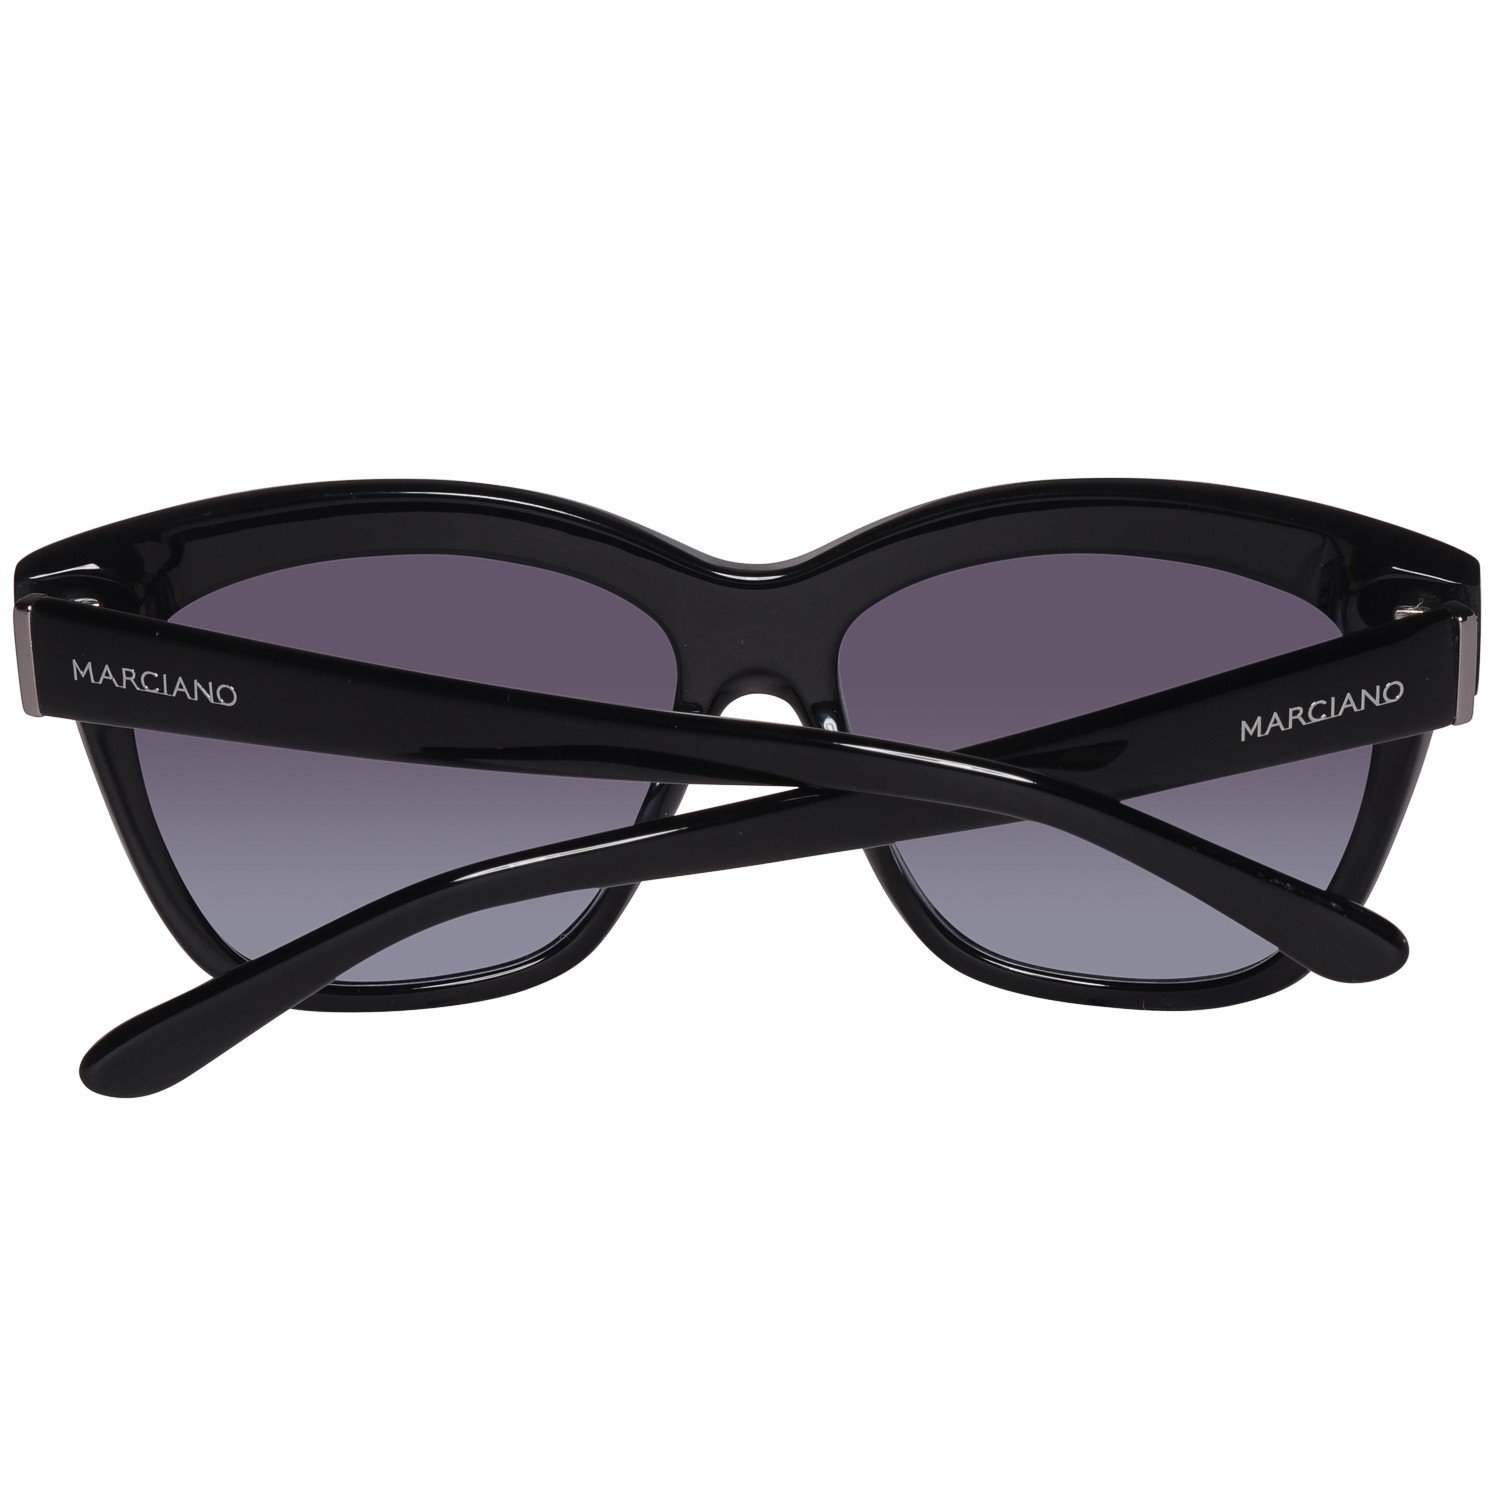 30b4c4463e Guess By Marciano GM0729 C57 01B (shiny black   gradient smoke) Sunglasses   Amazon.co.uk  Clothing